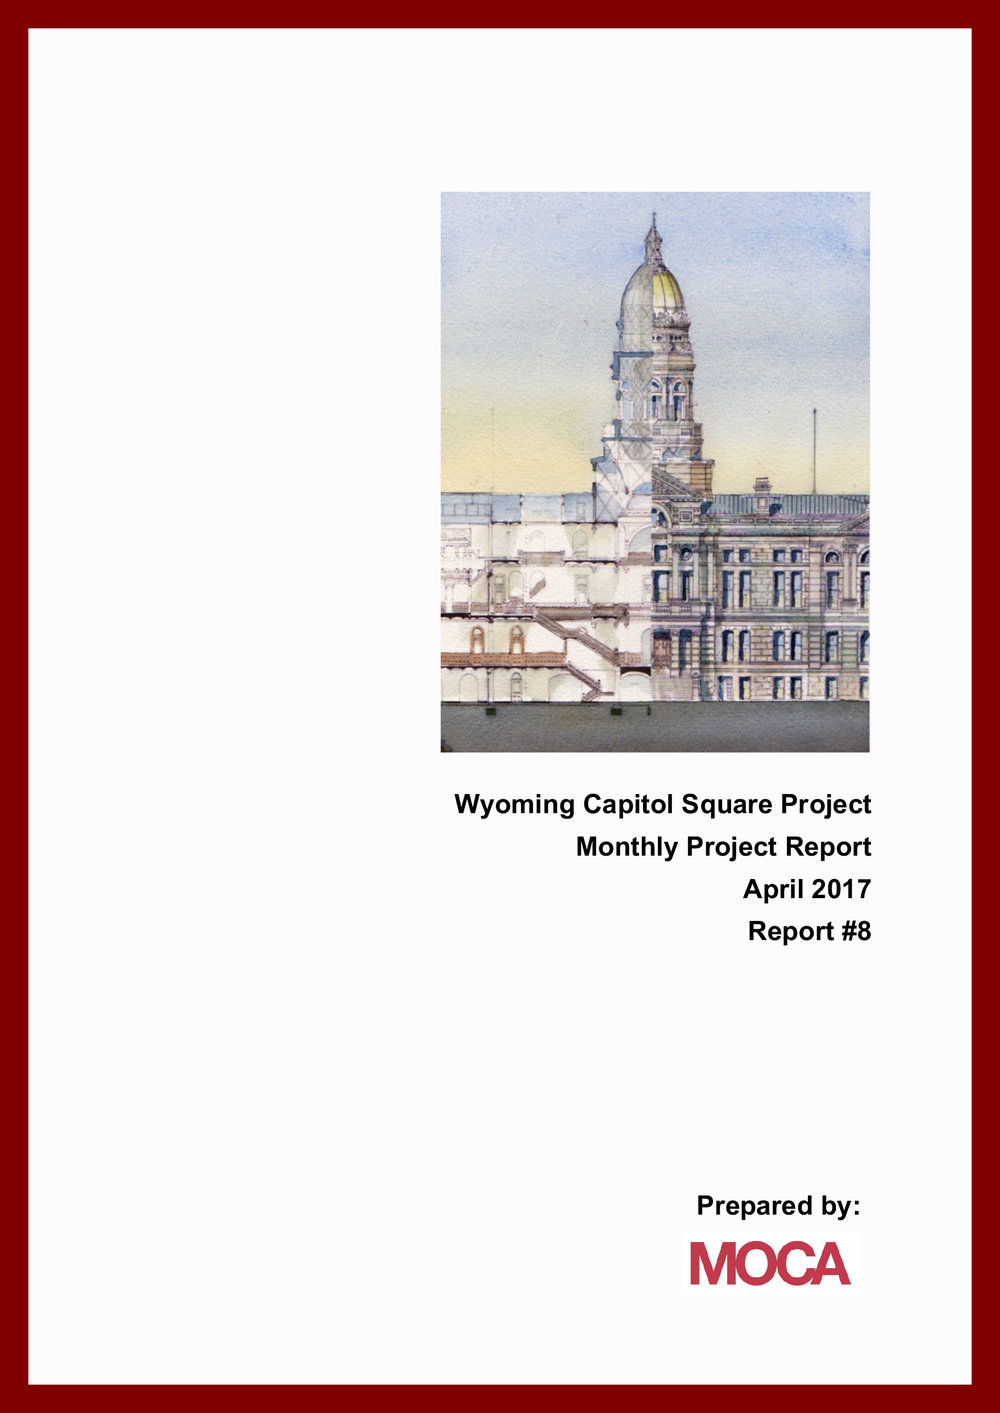 2017-0602-WyomingCapitolMonthlyReport-Final-8.jpg